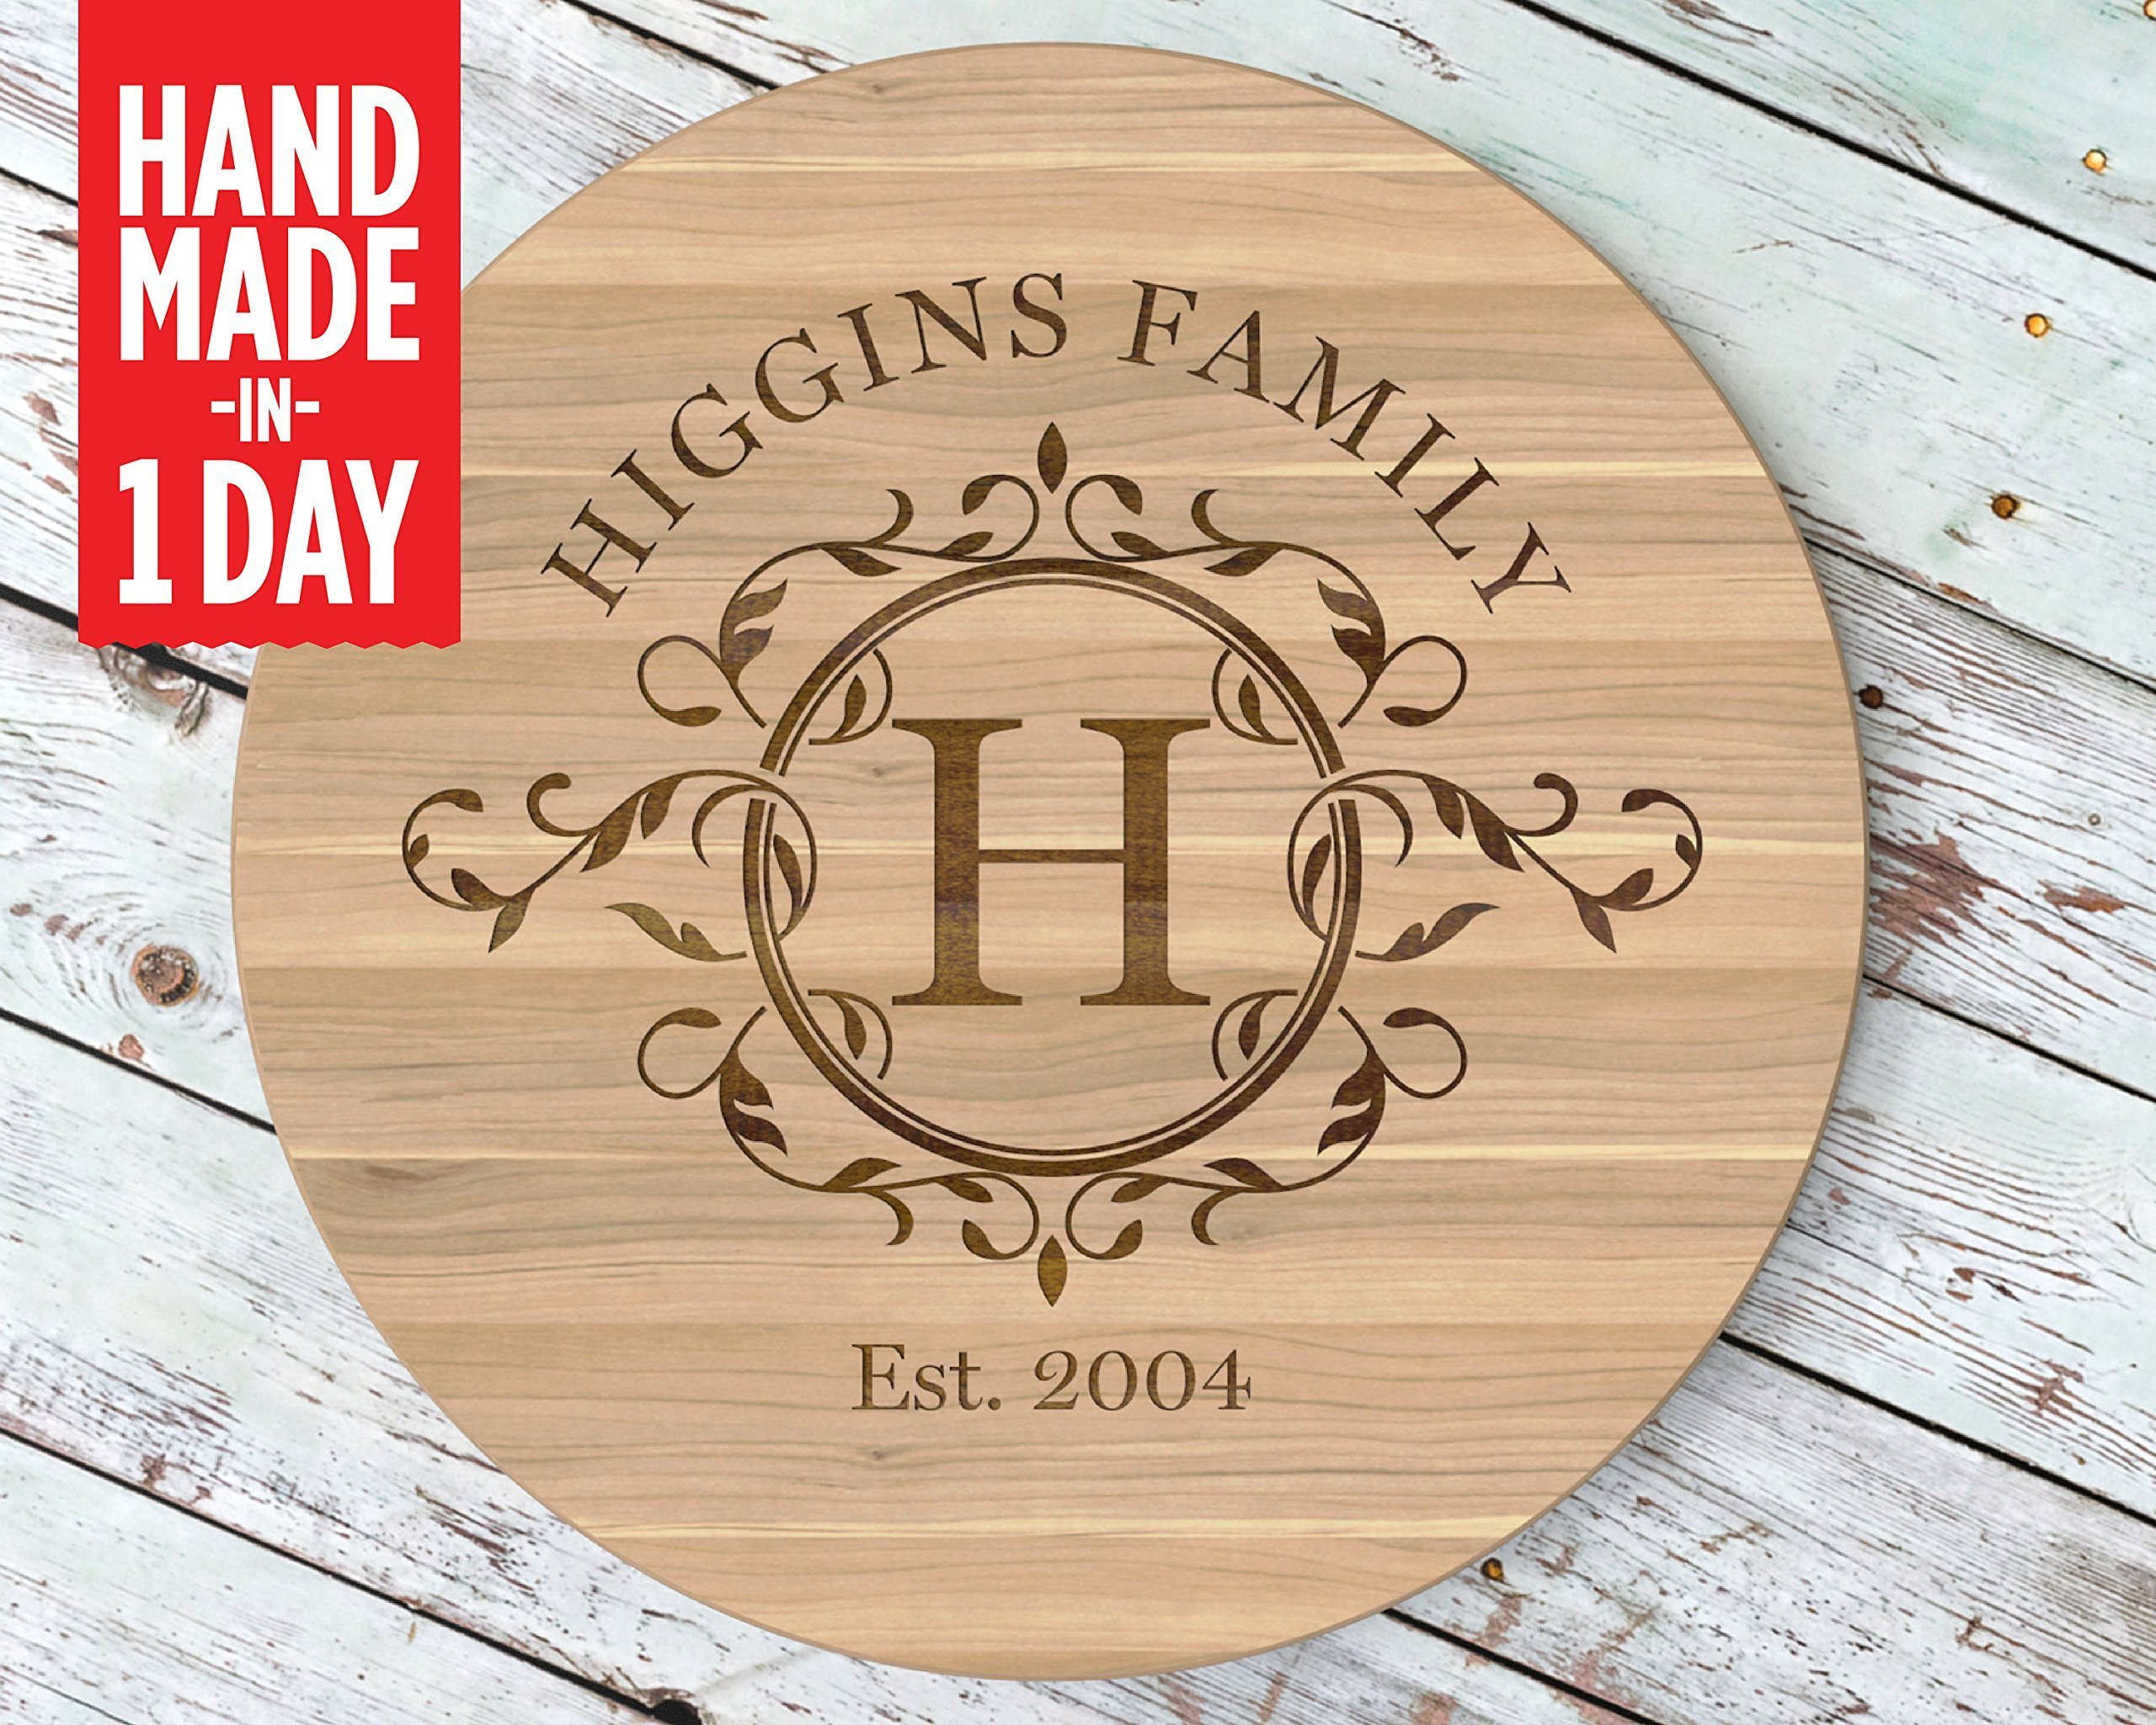 Lazy Susan, Custom Lazy Susan, Personalized Lazy Susan, Custom Christmas Gifts, Turntable, Lazy Susan Turntable, Cutting Board, Custom Cutting Board, Personalized Cutting Board - LS533